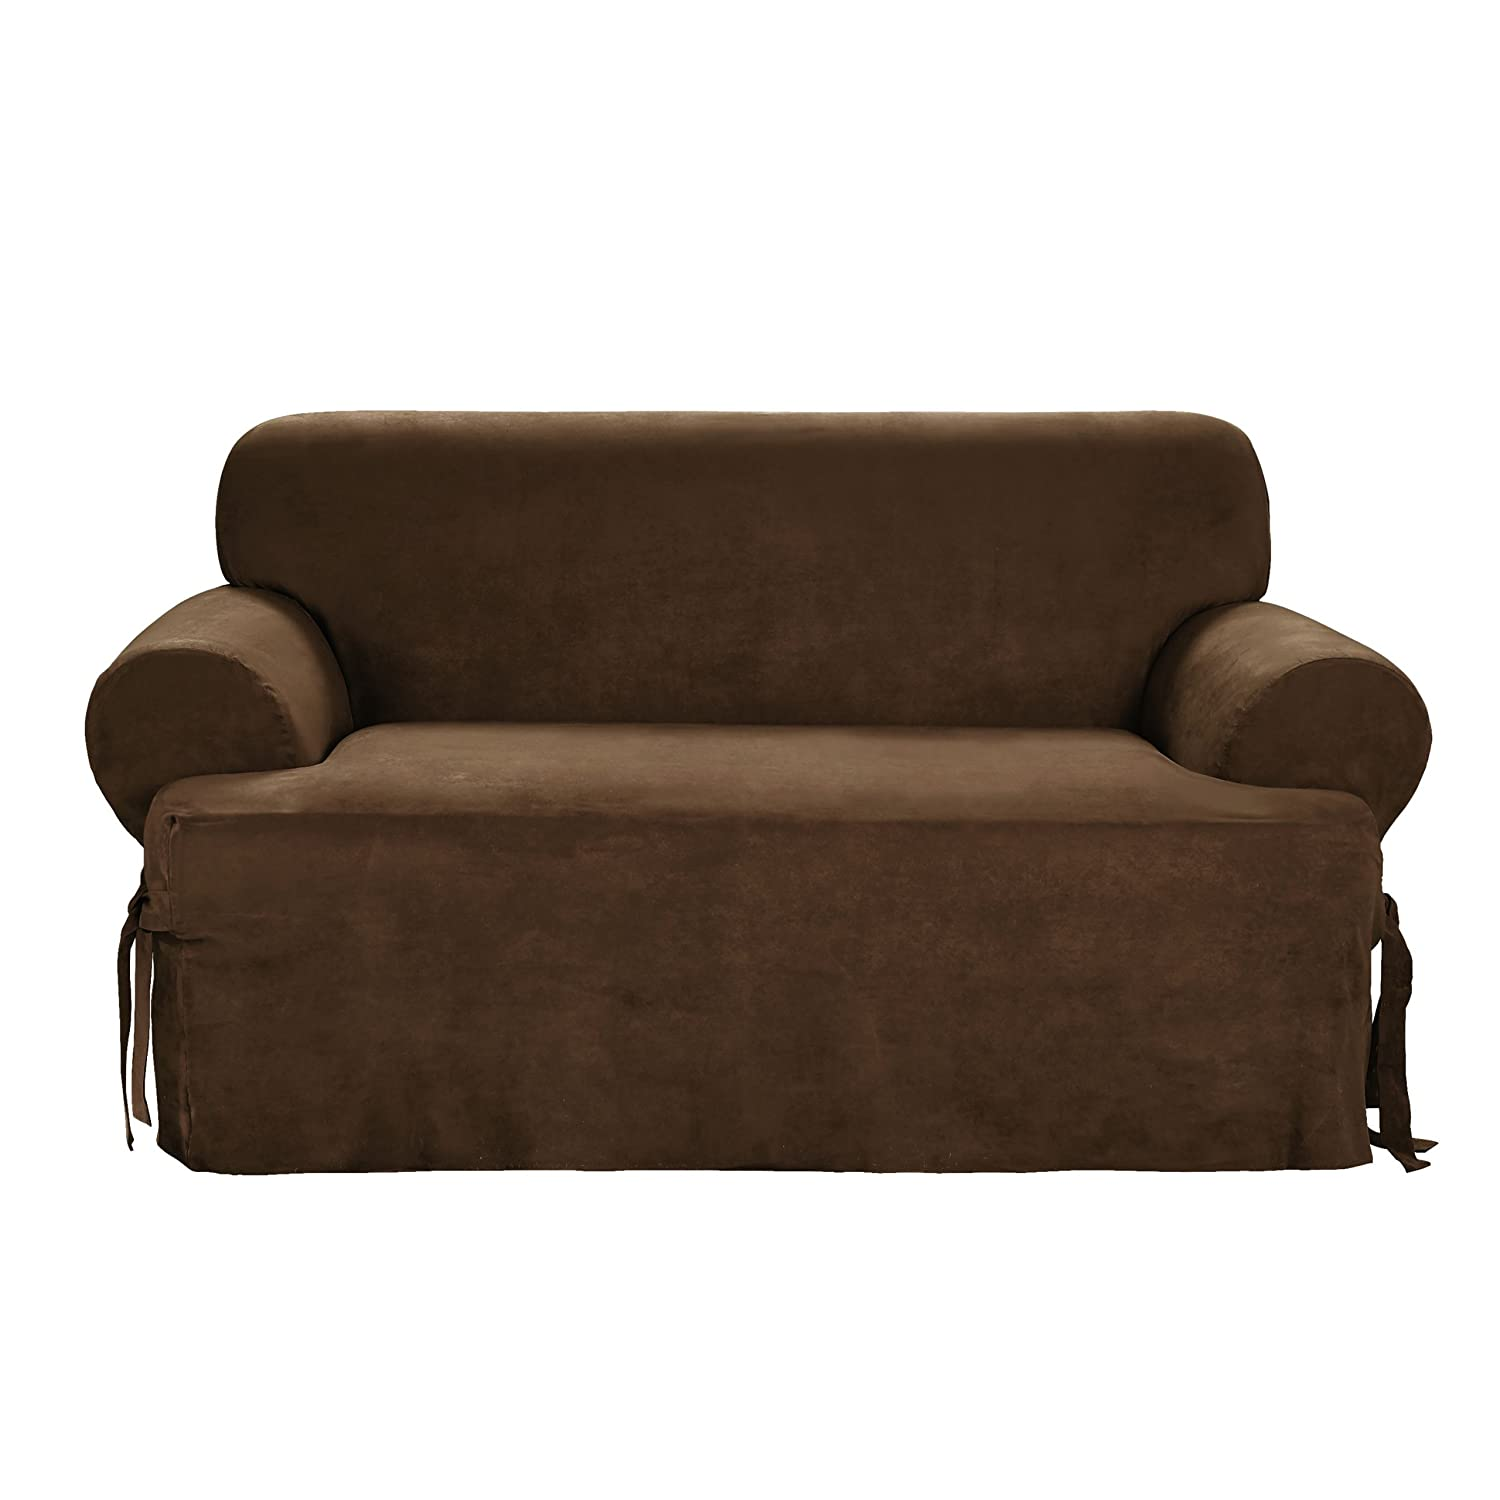 Amazon Sure Fit Soft Suede T Cushion Sofa Slipcover